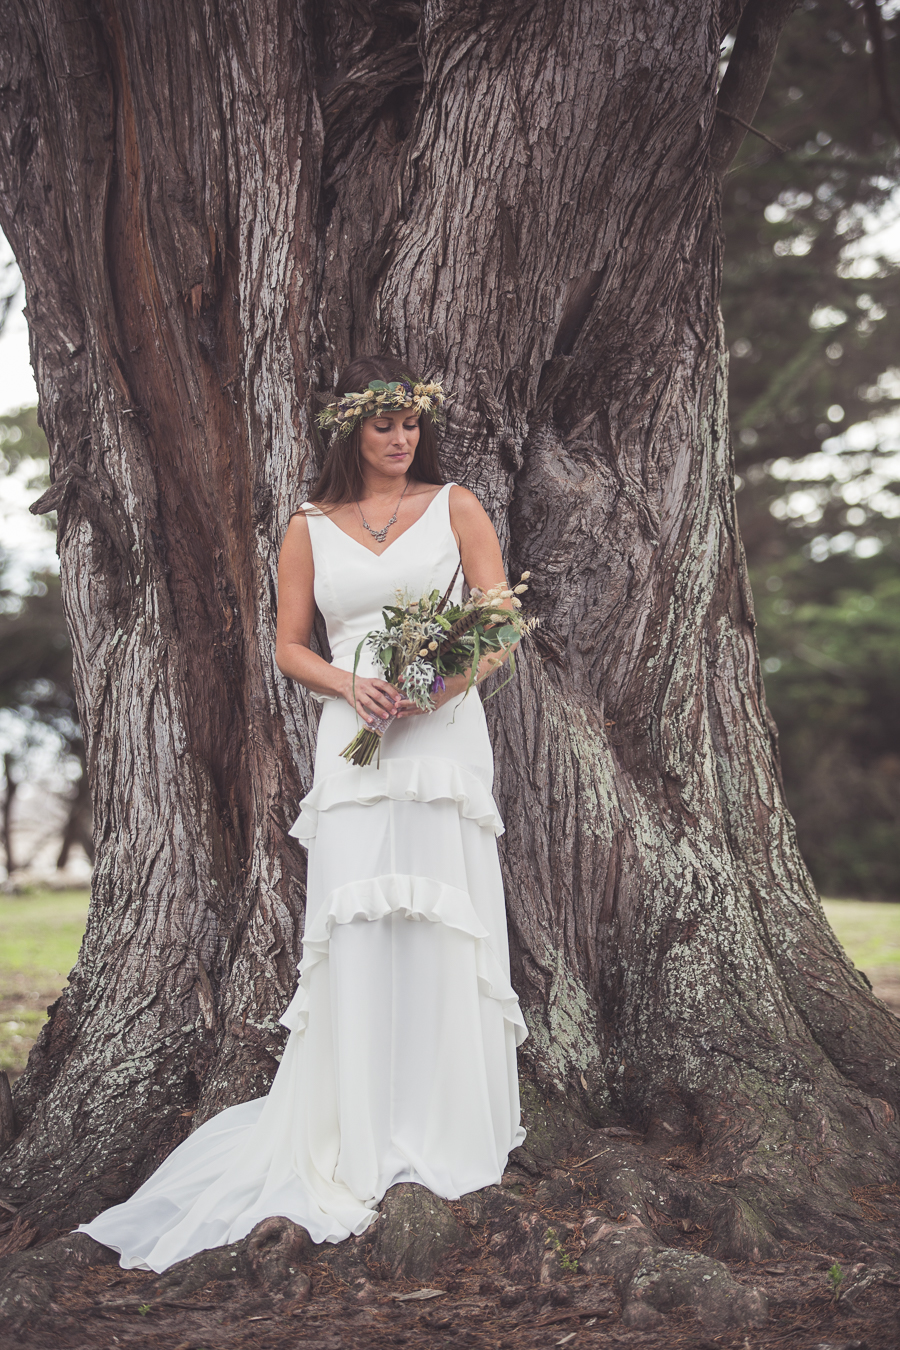 Beach boho wedding styling ideas from the UK, image credit Katie Mortimore (5)